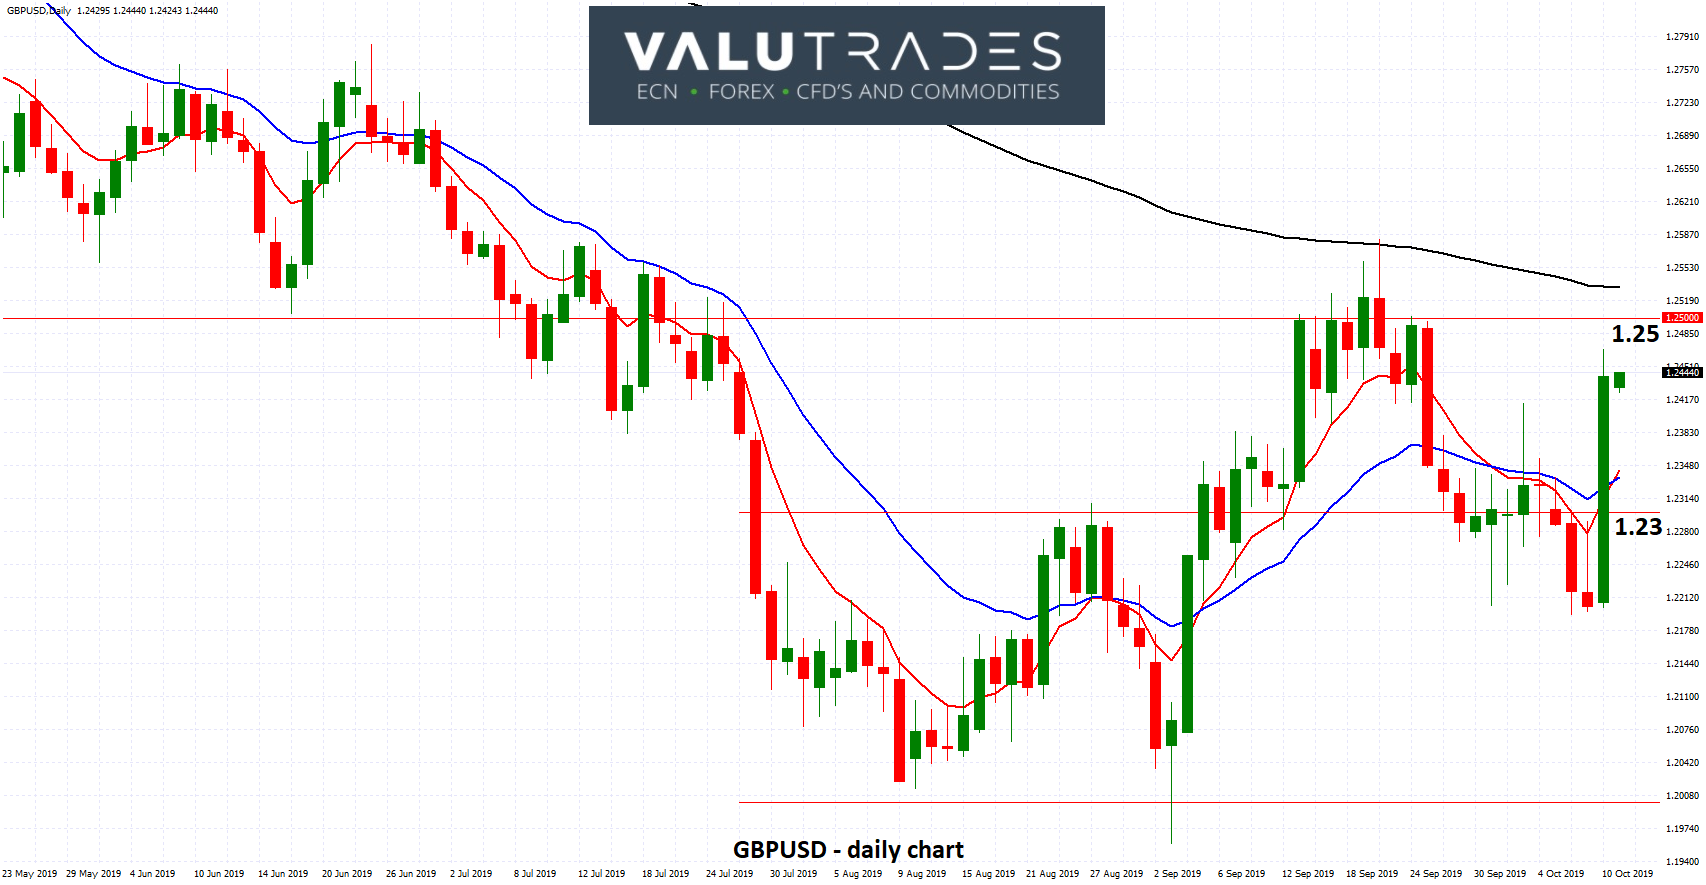 GBPUSD - Surges to 1.2450 after Positive Brexit Meeting